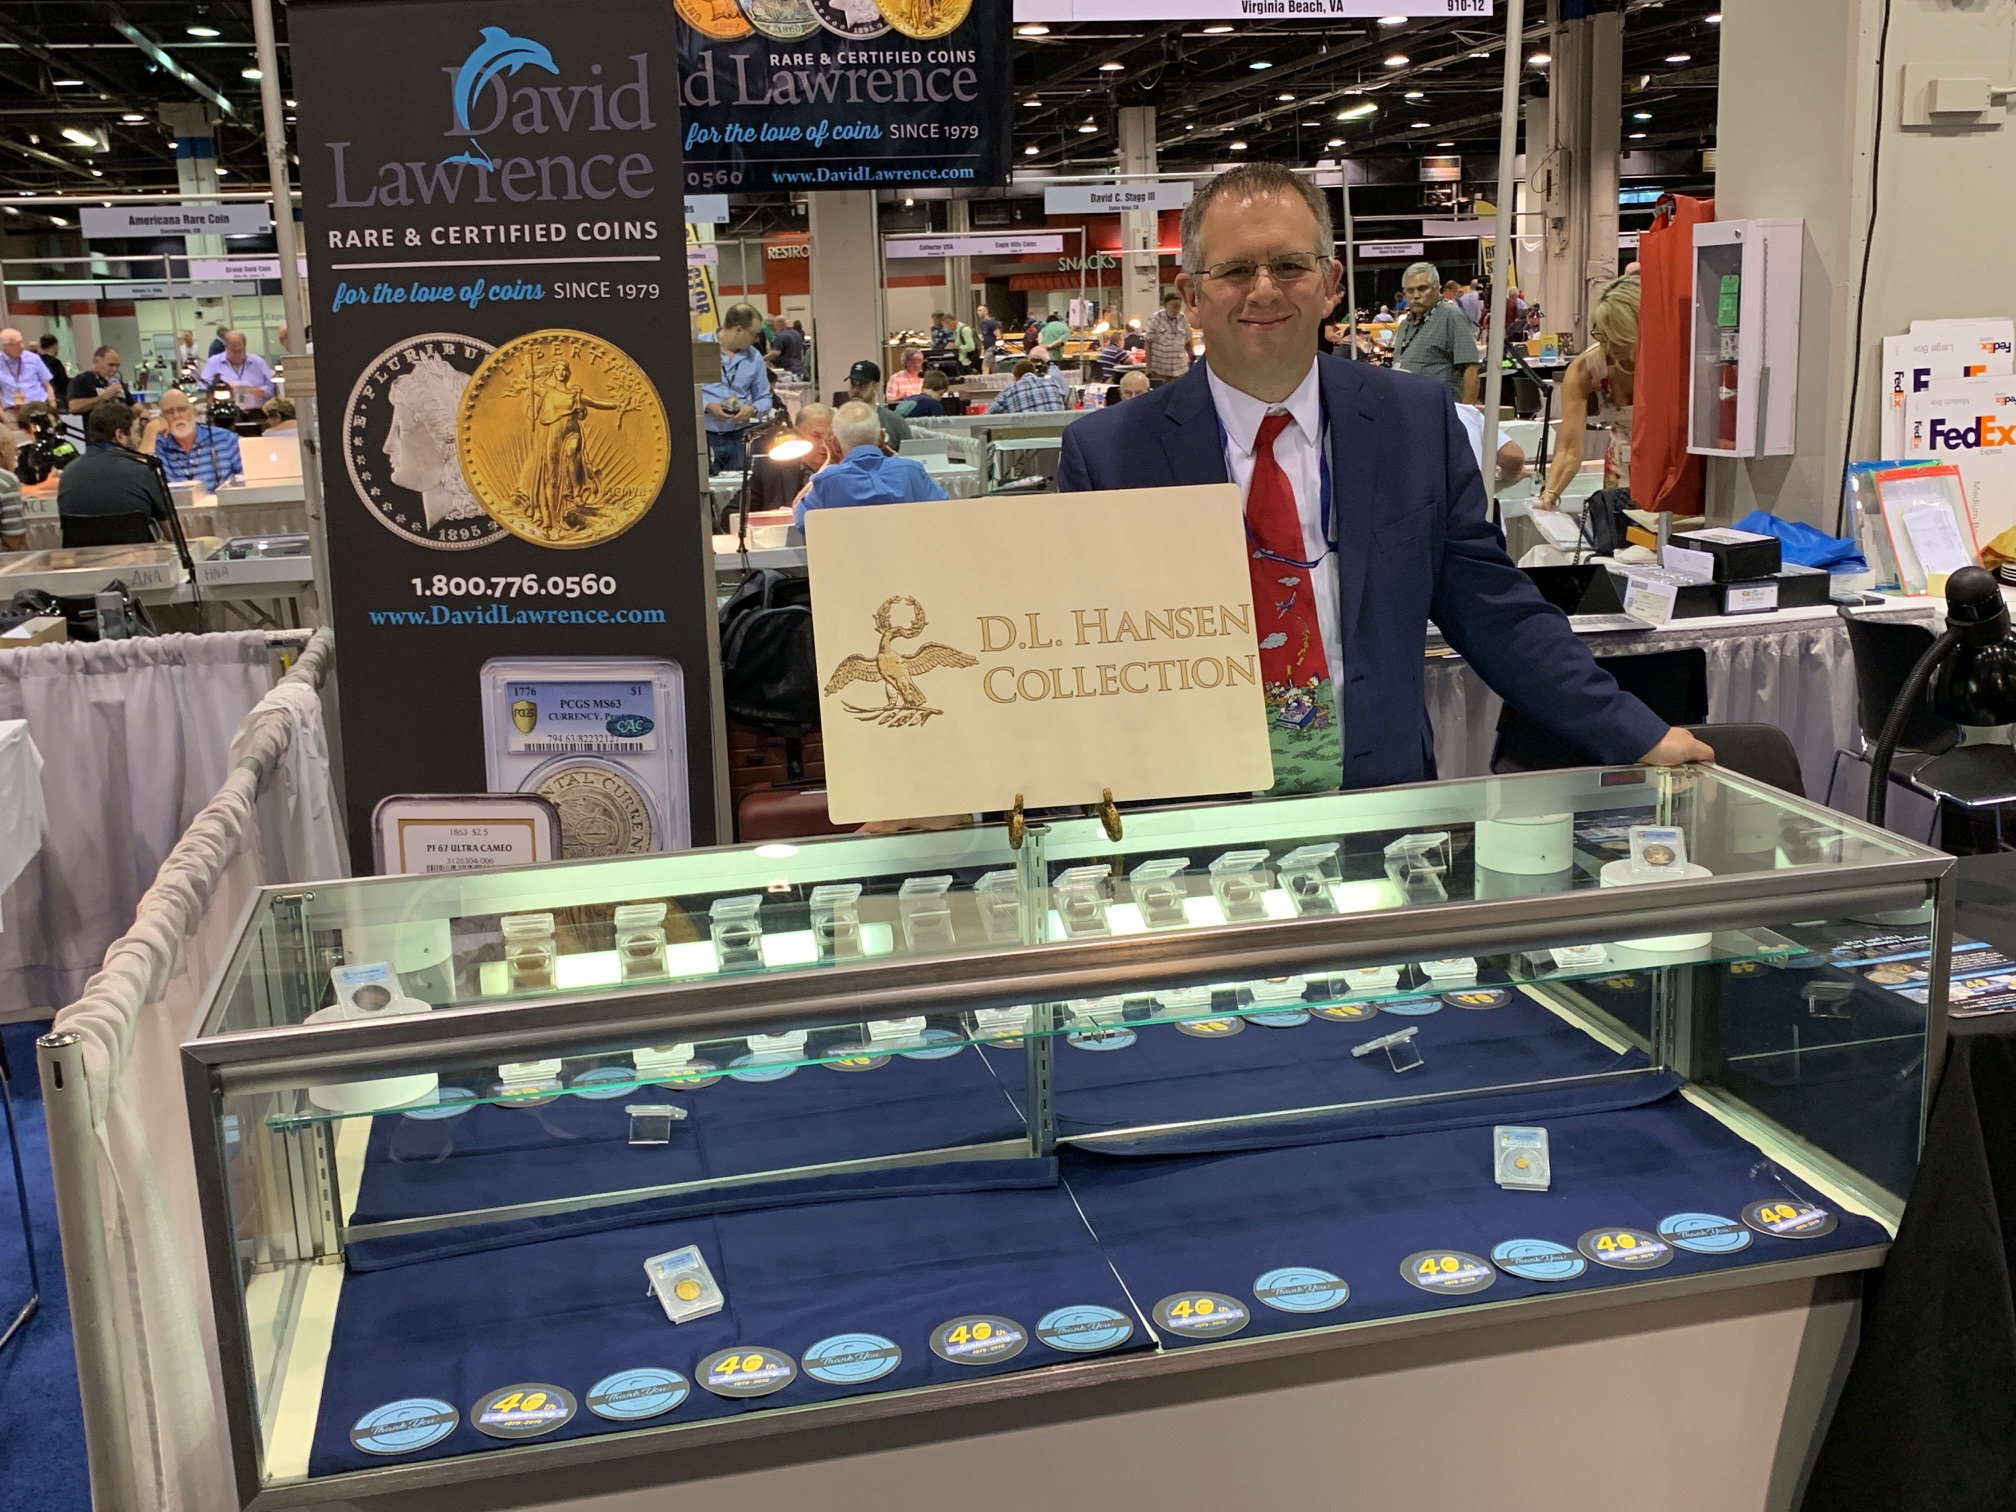 Another 1894-S Dime Finds Its Way Home: David Lawrence Rare Coins and D.L. Hansen Acquire Famous Numismatic Rarity